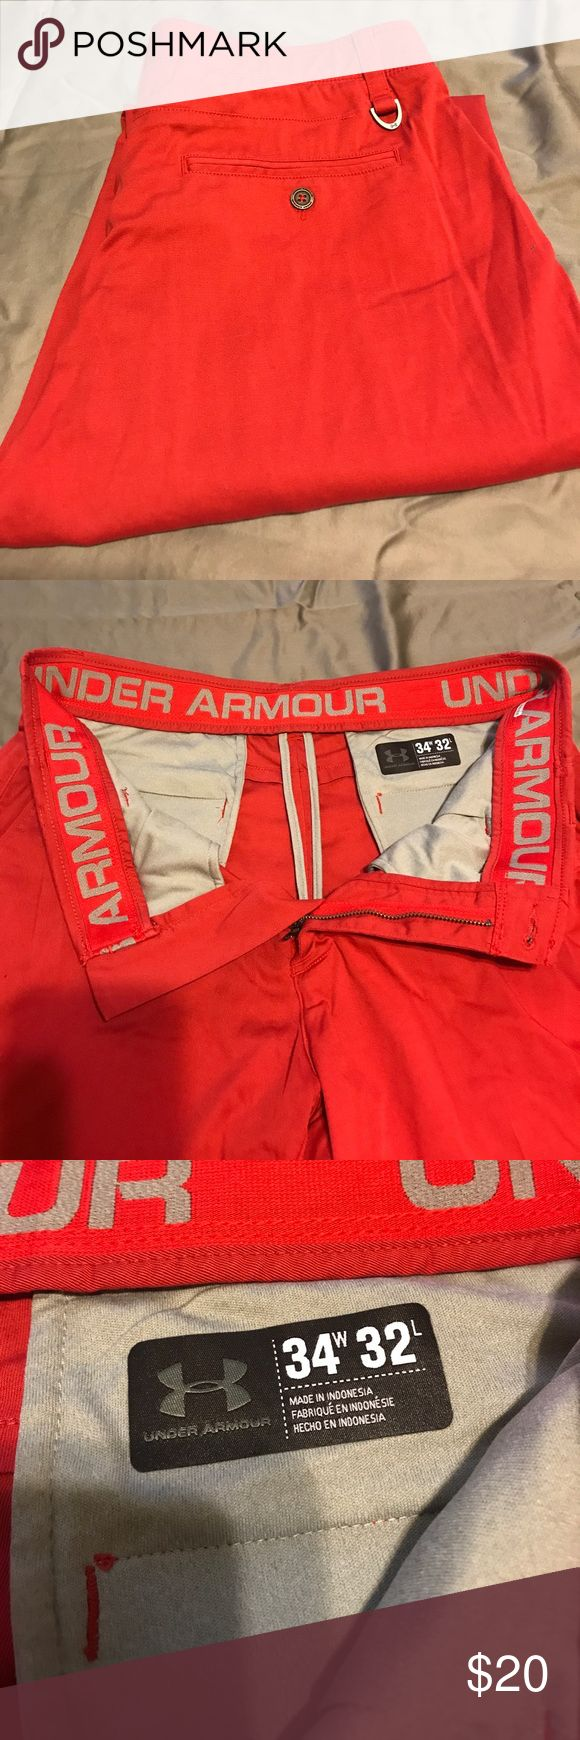 Men's Under Armour Red Golf Pants Red Men's Under Armour Golf Pants. Hemmed to be 34Wx28L Under Armour Pants Chinos & Khakis